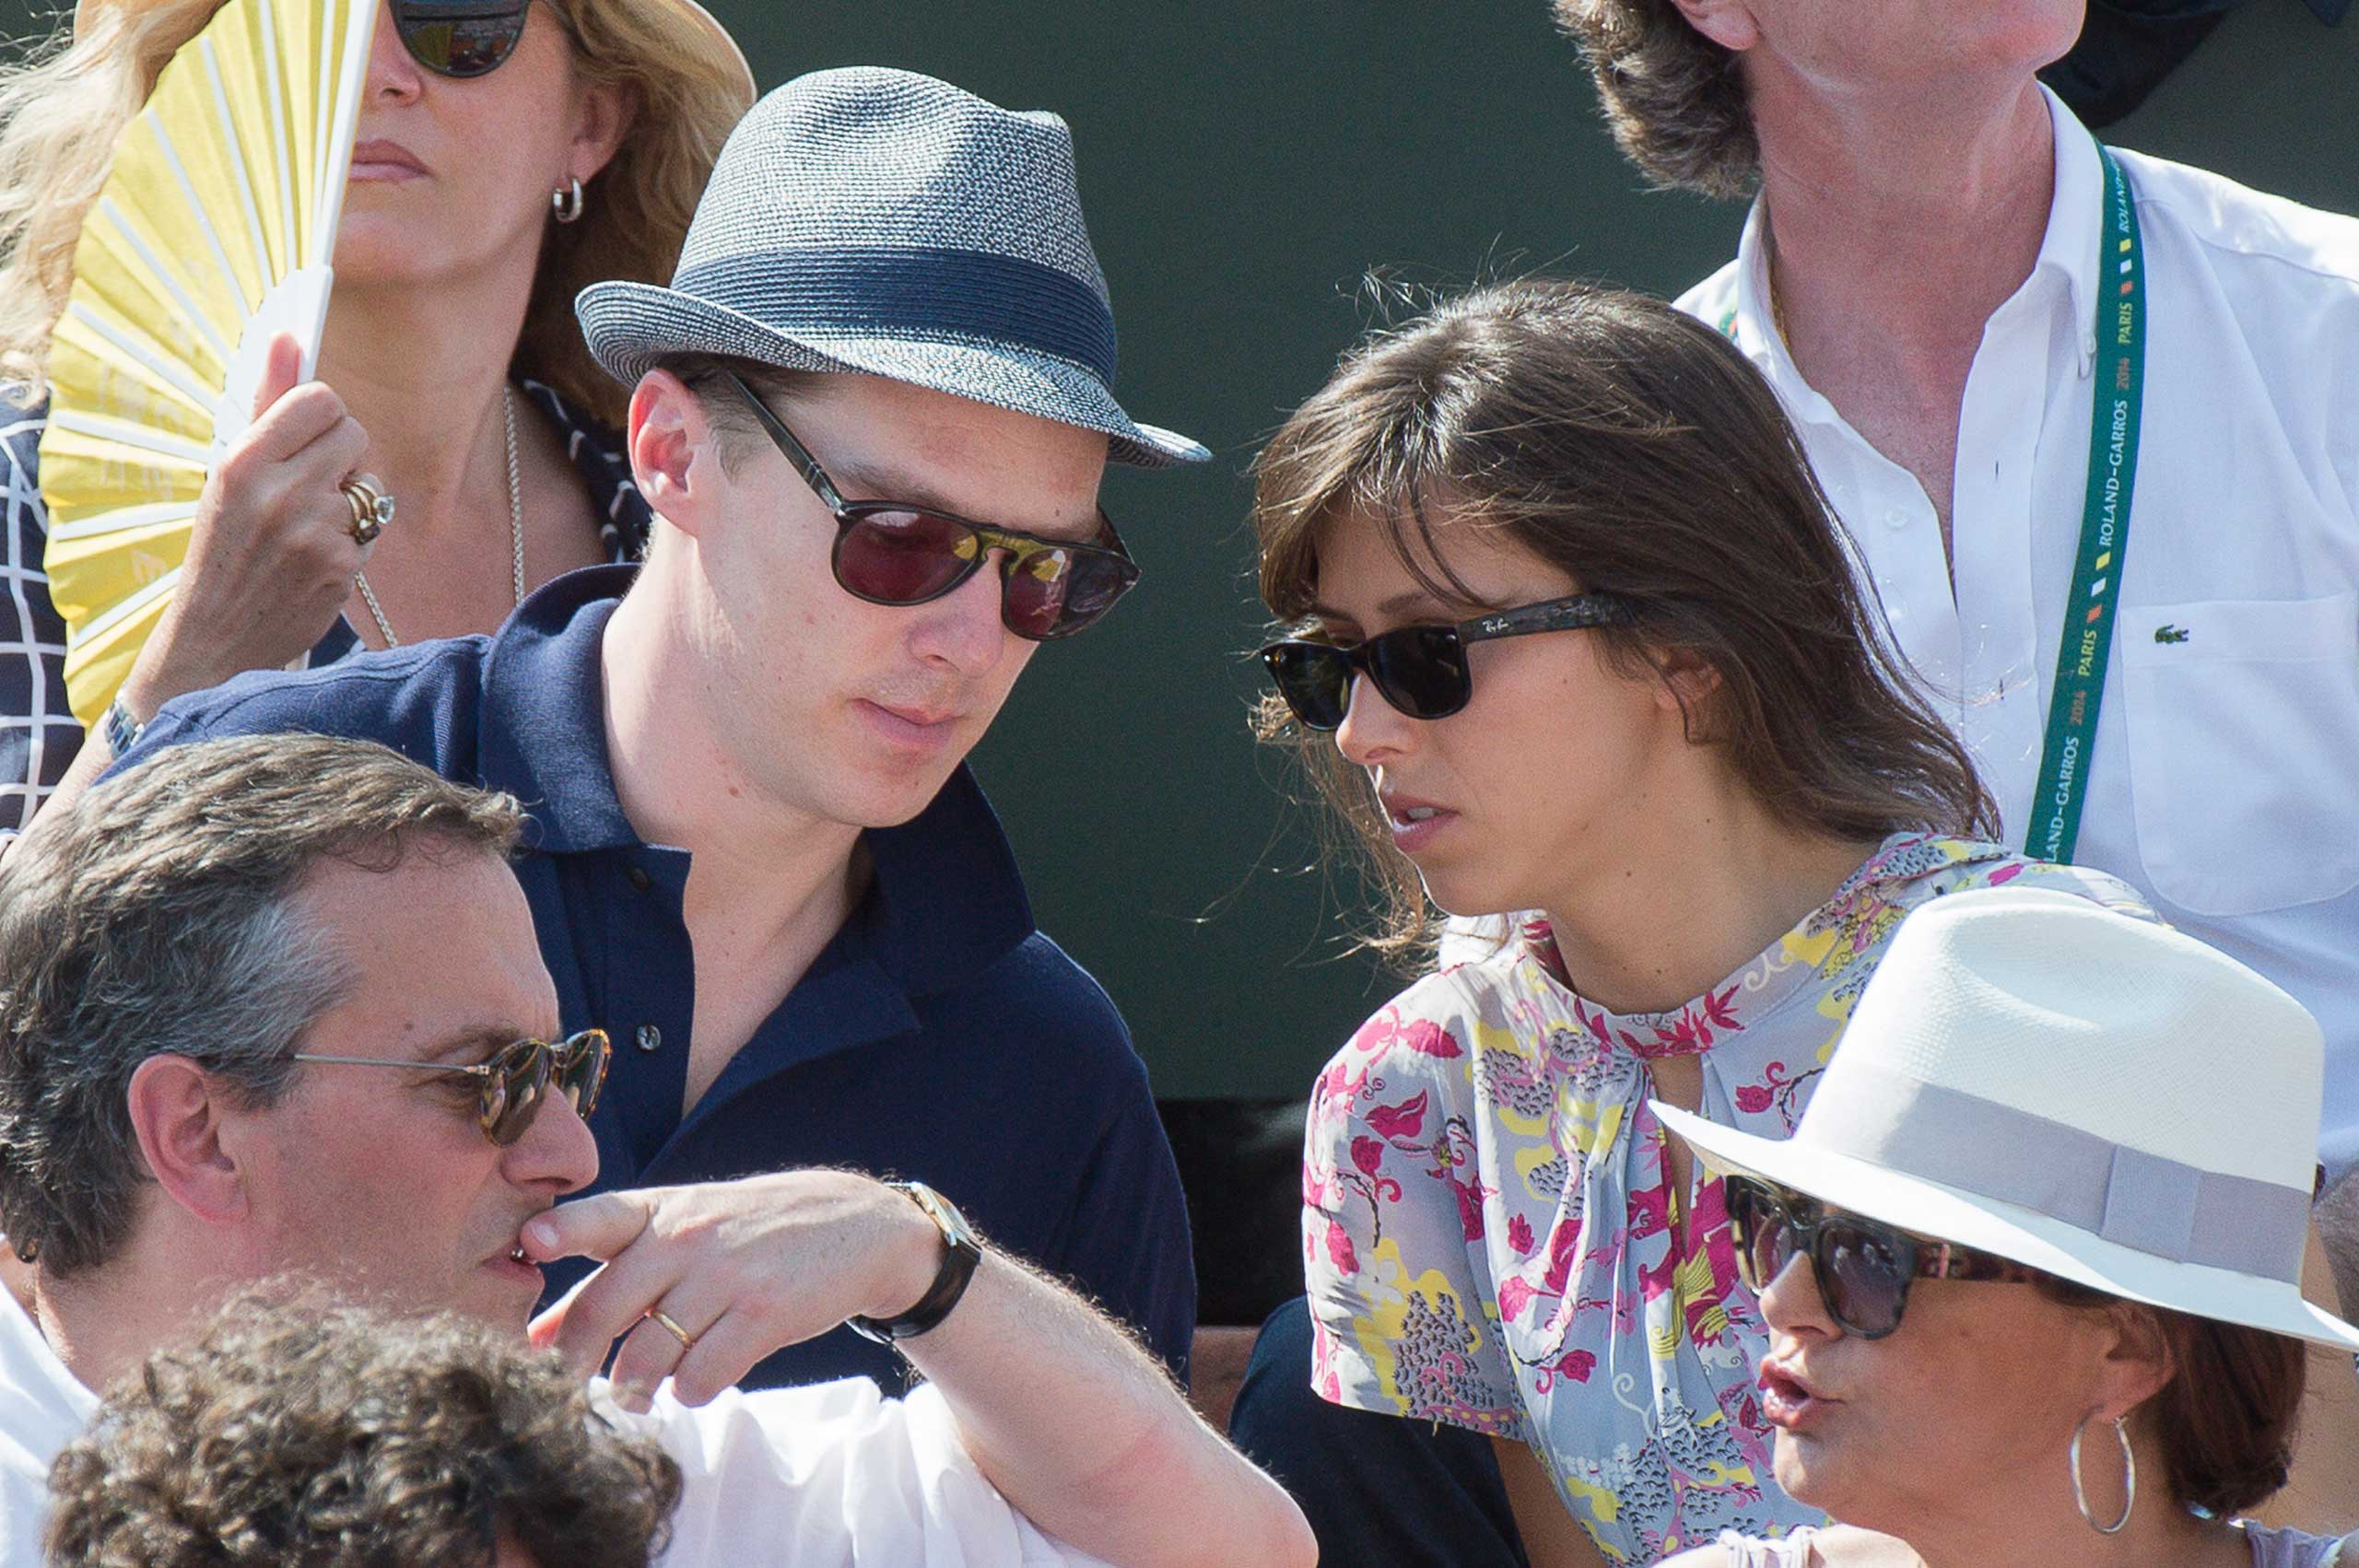 The very private couple was recently spotted together at the French Open on June 8, 2014 in Paris, France.